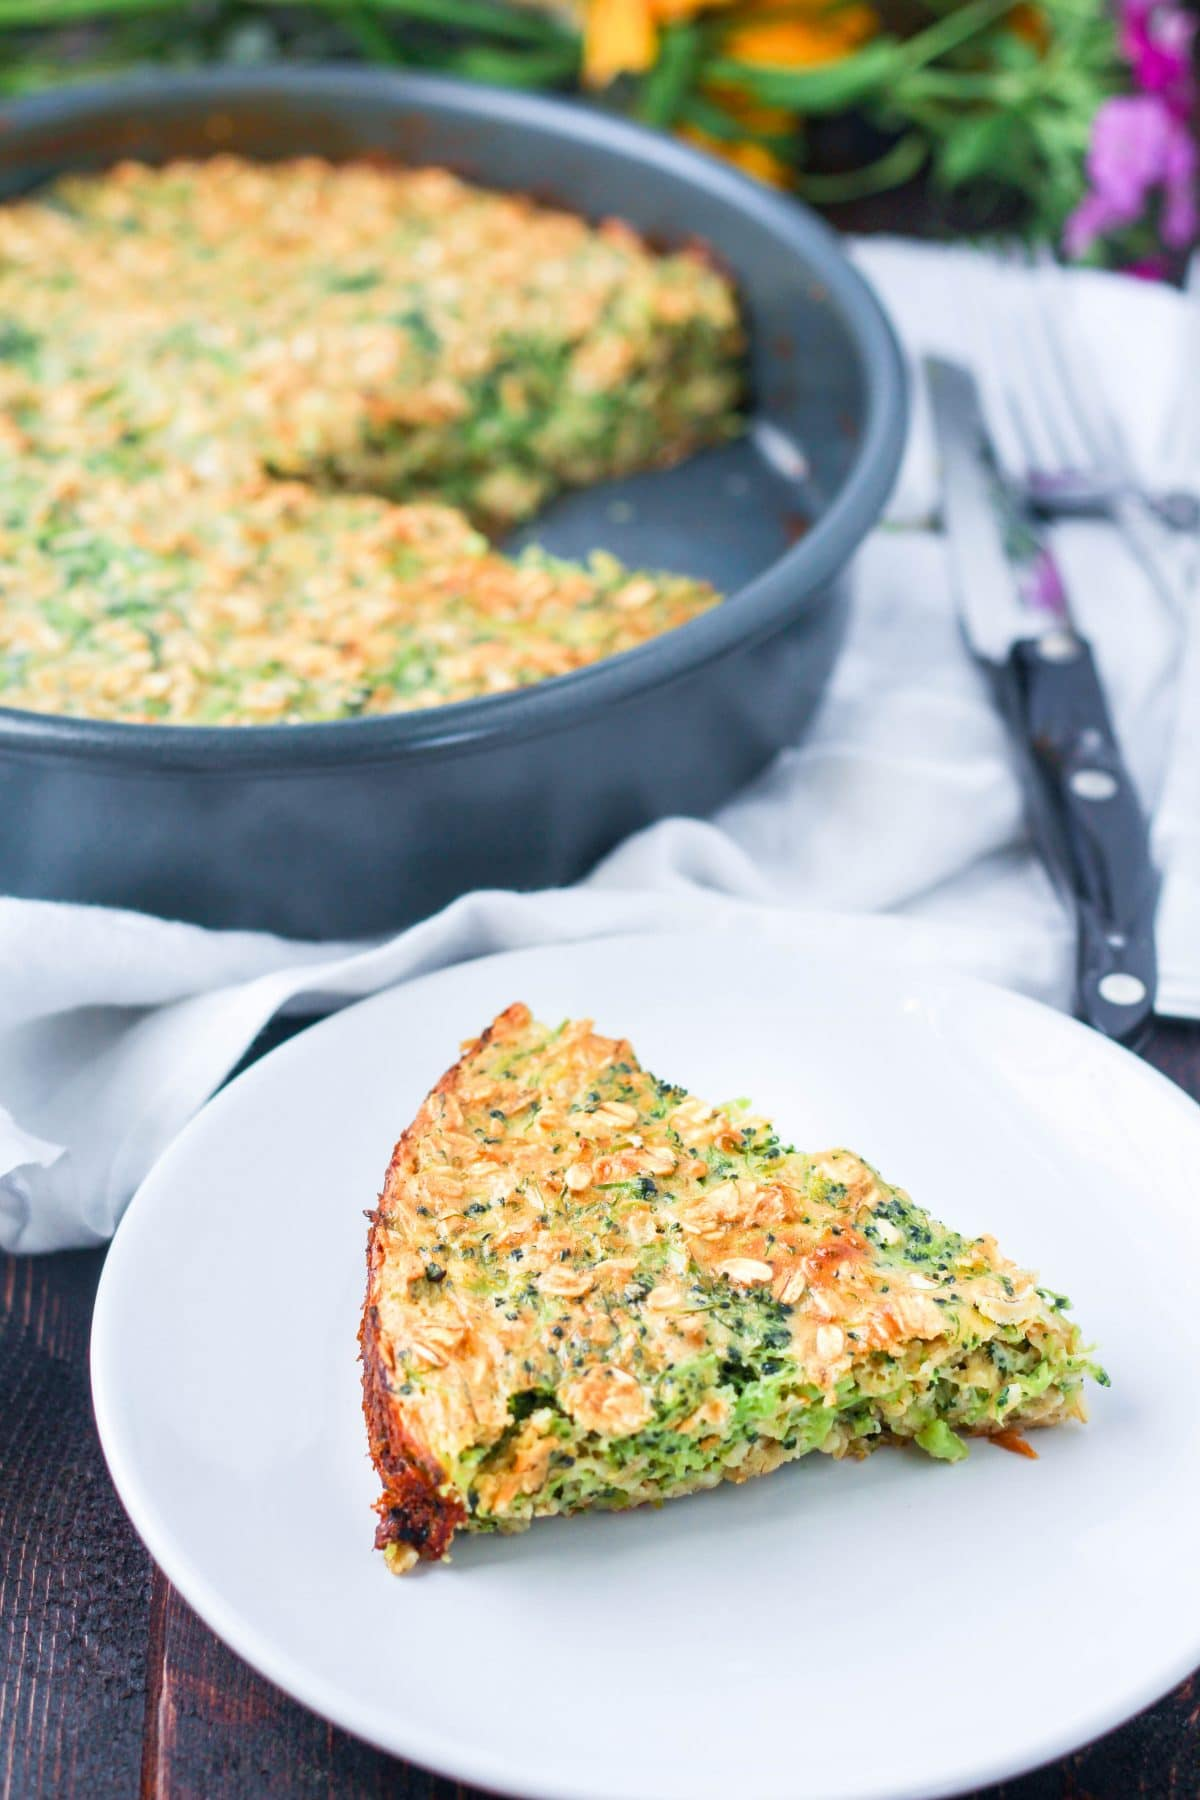 Broccoli Cheddar Oatmeal Bake